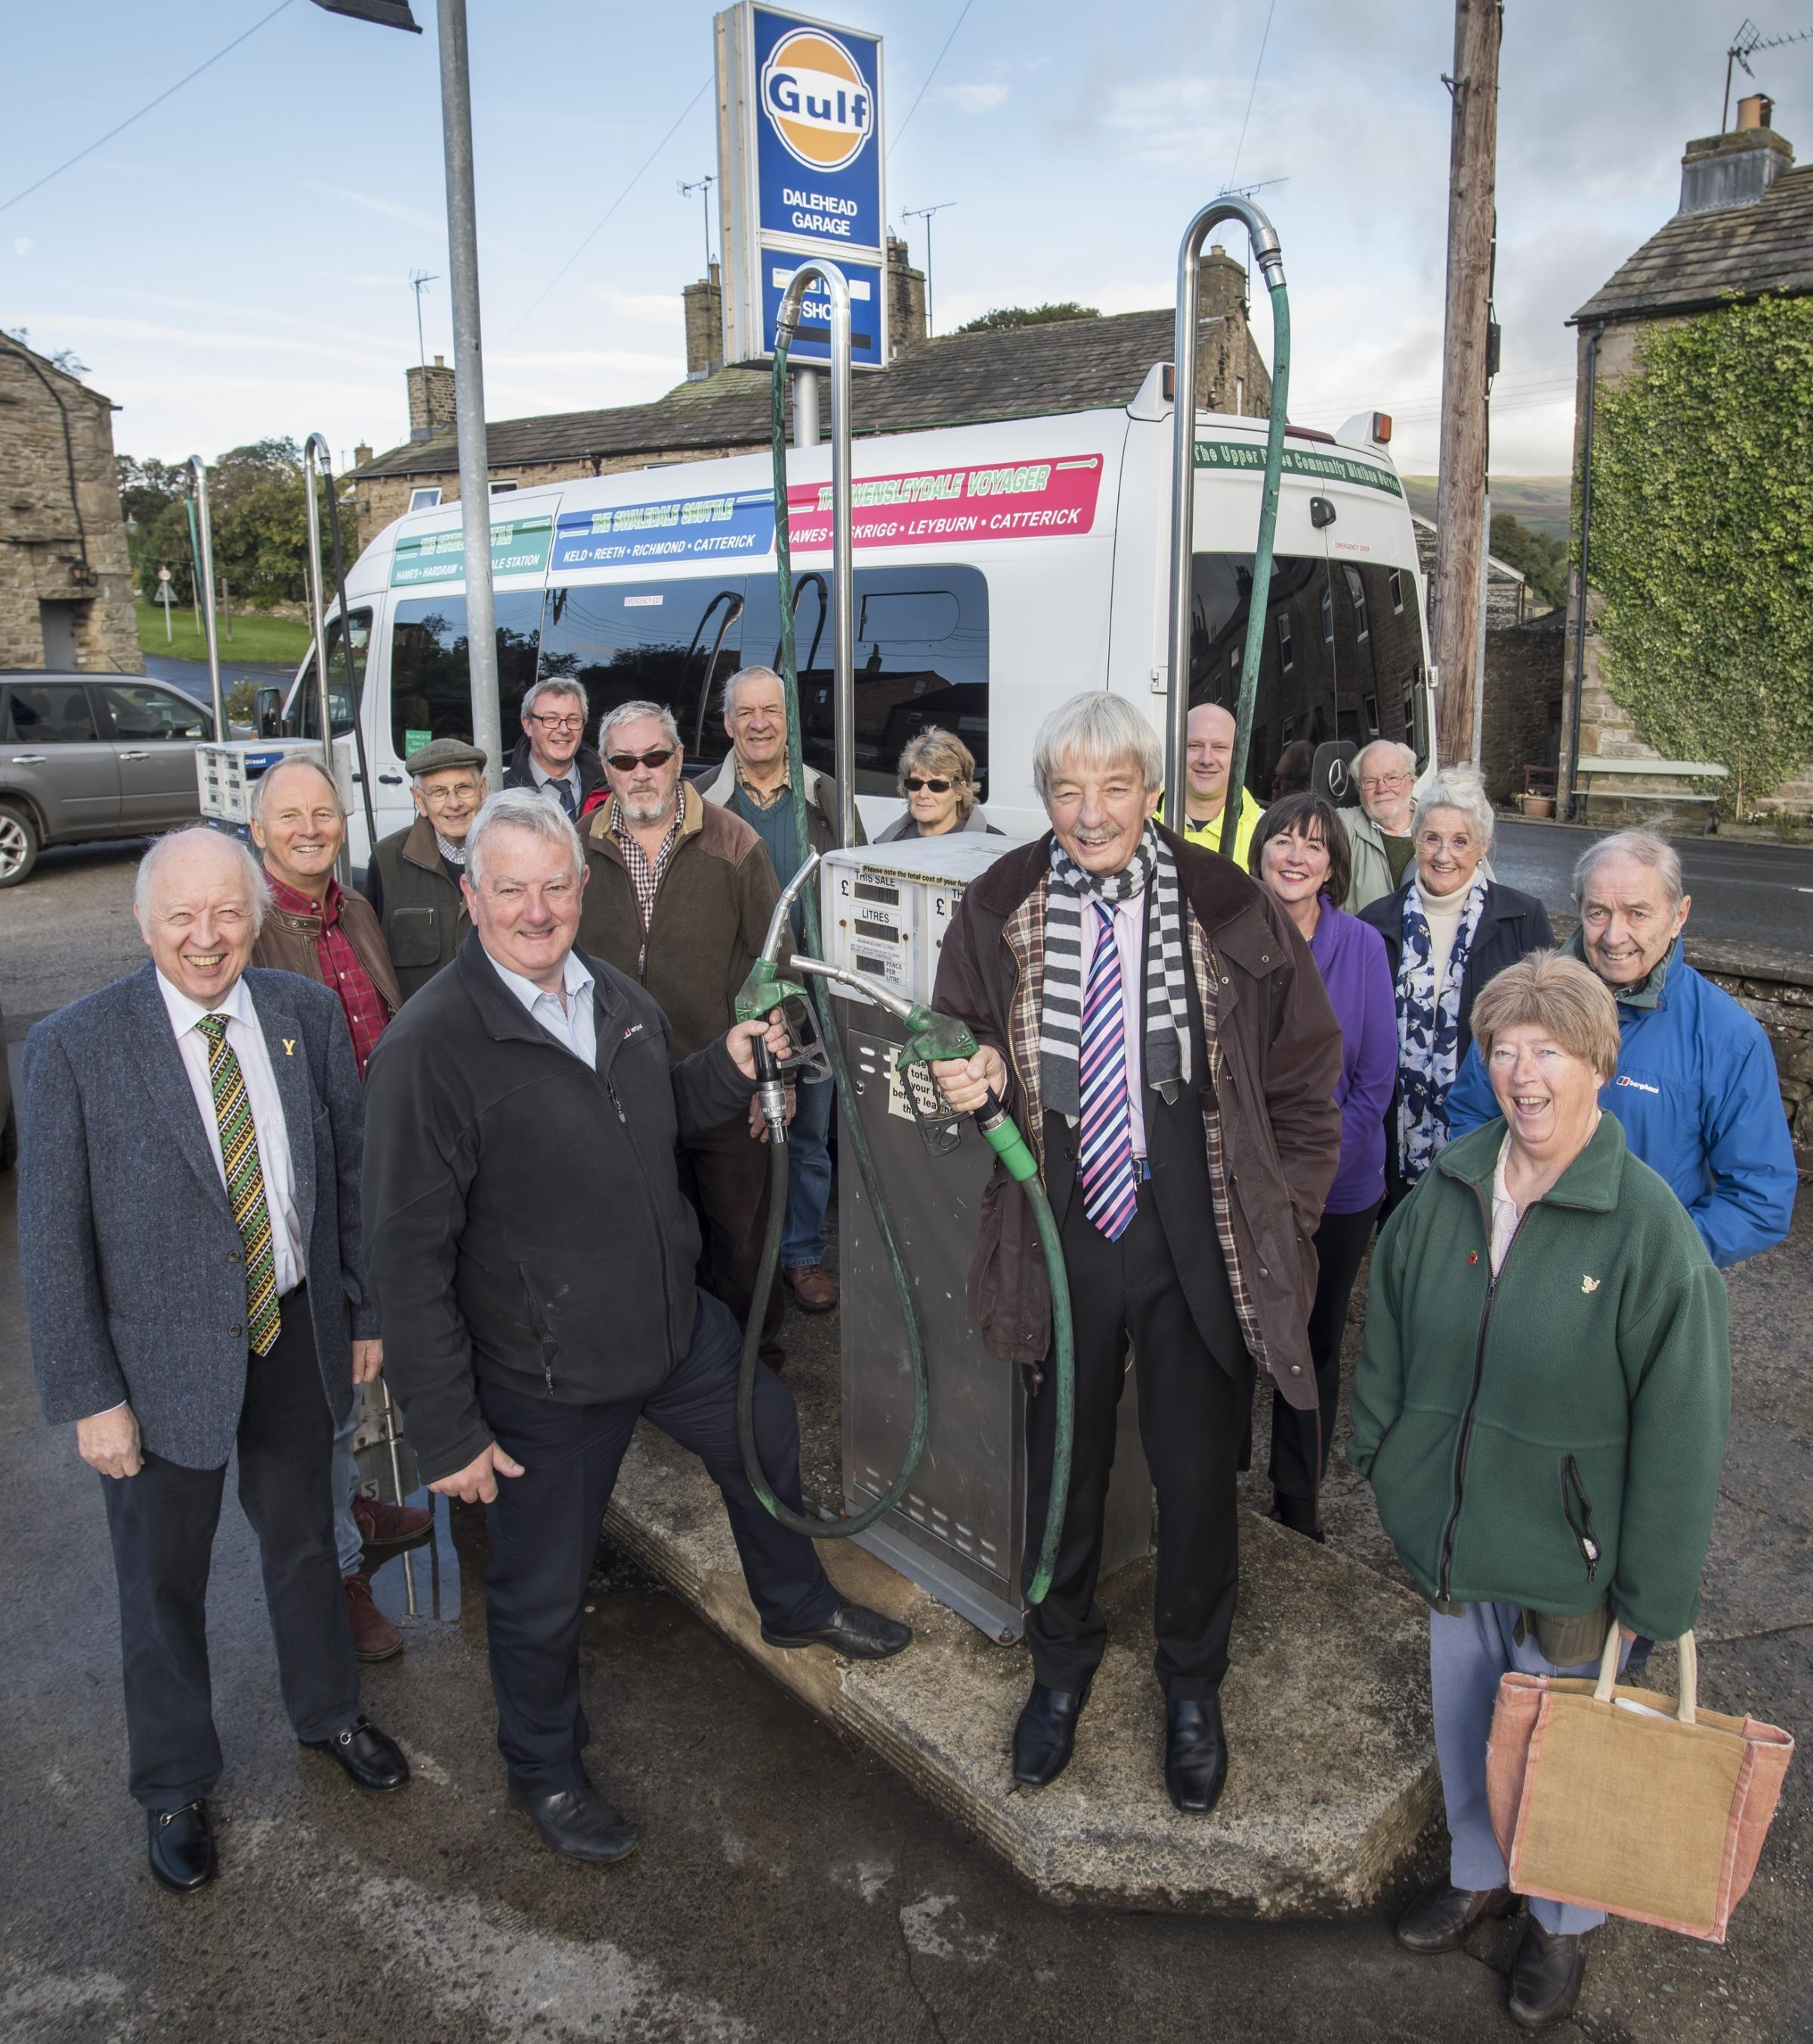 : Cllr John Blackie (centre) at the Hawes filling station with Cllr Carl Les, (far left), North Yorkshire's Leader, volunteer drivers of the Little White Bus and Upper Dales residents